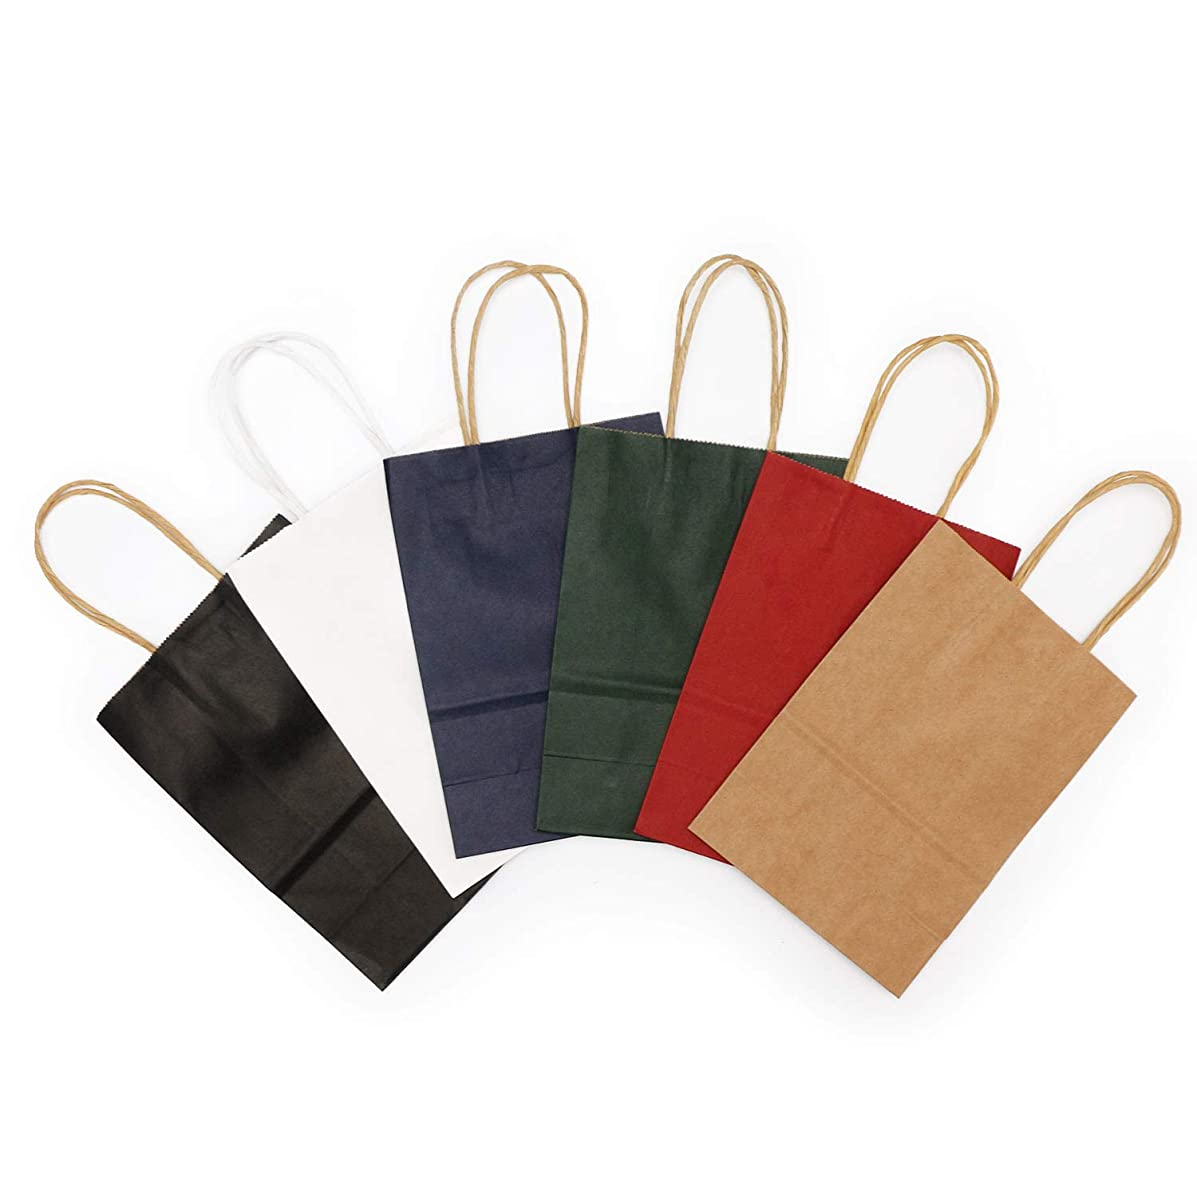 Assorted Kraft Paper Bags, 6pcs Multi Color Retail Paper Bags with Handles, Merchandise Bag, Gift Bag, Wedding Party Bag (5.8